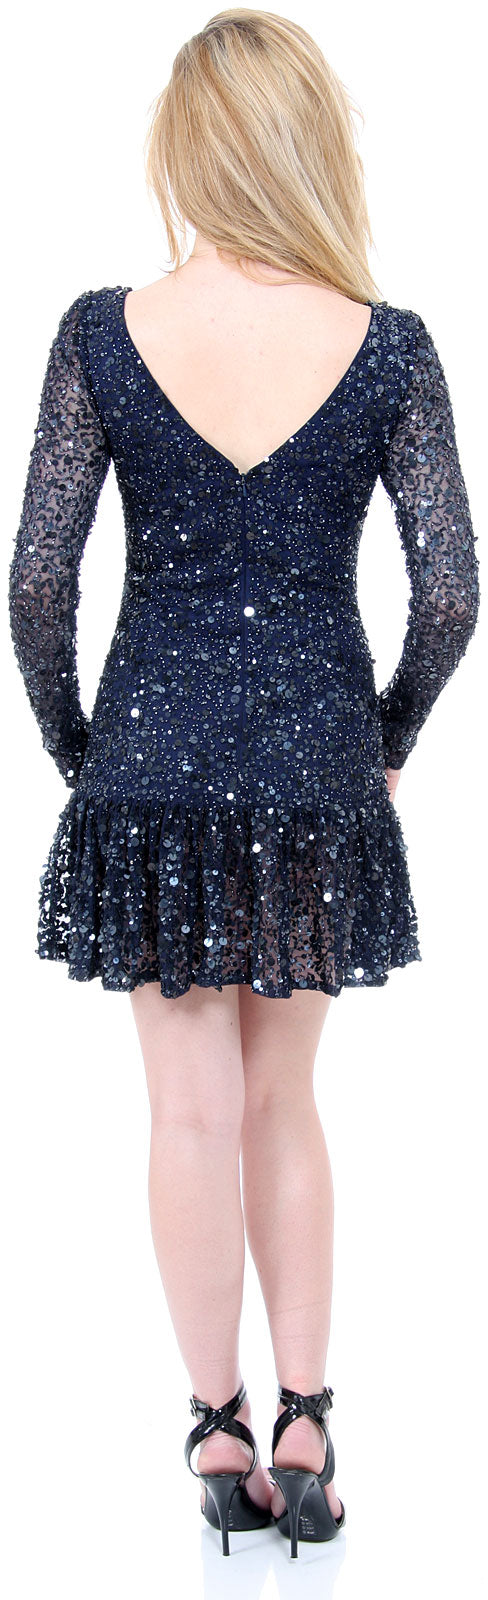 Image of Full Sleeves Flared Skirt Sequined Mini Party Dress back in Navy